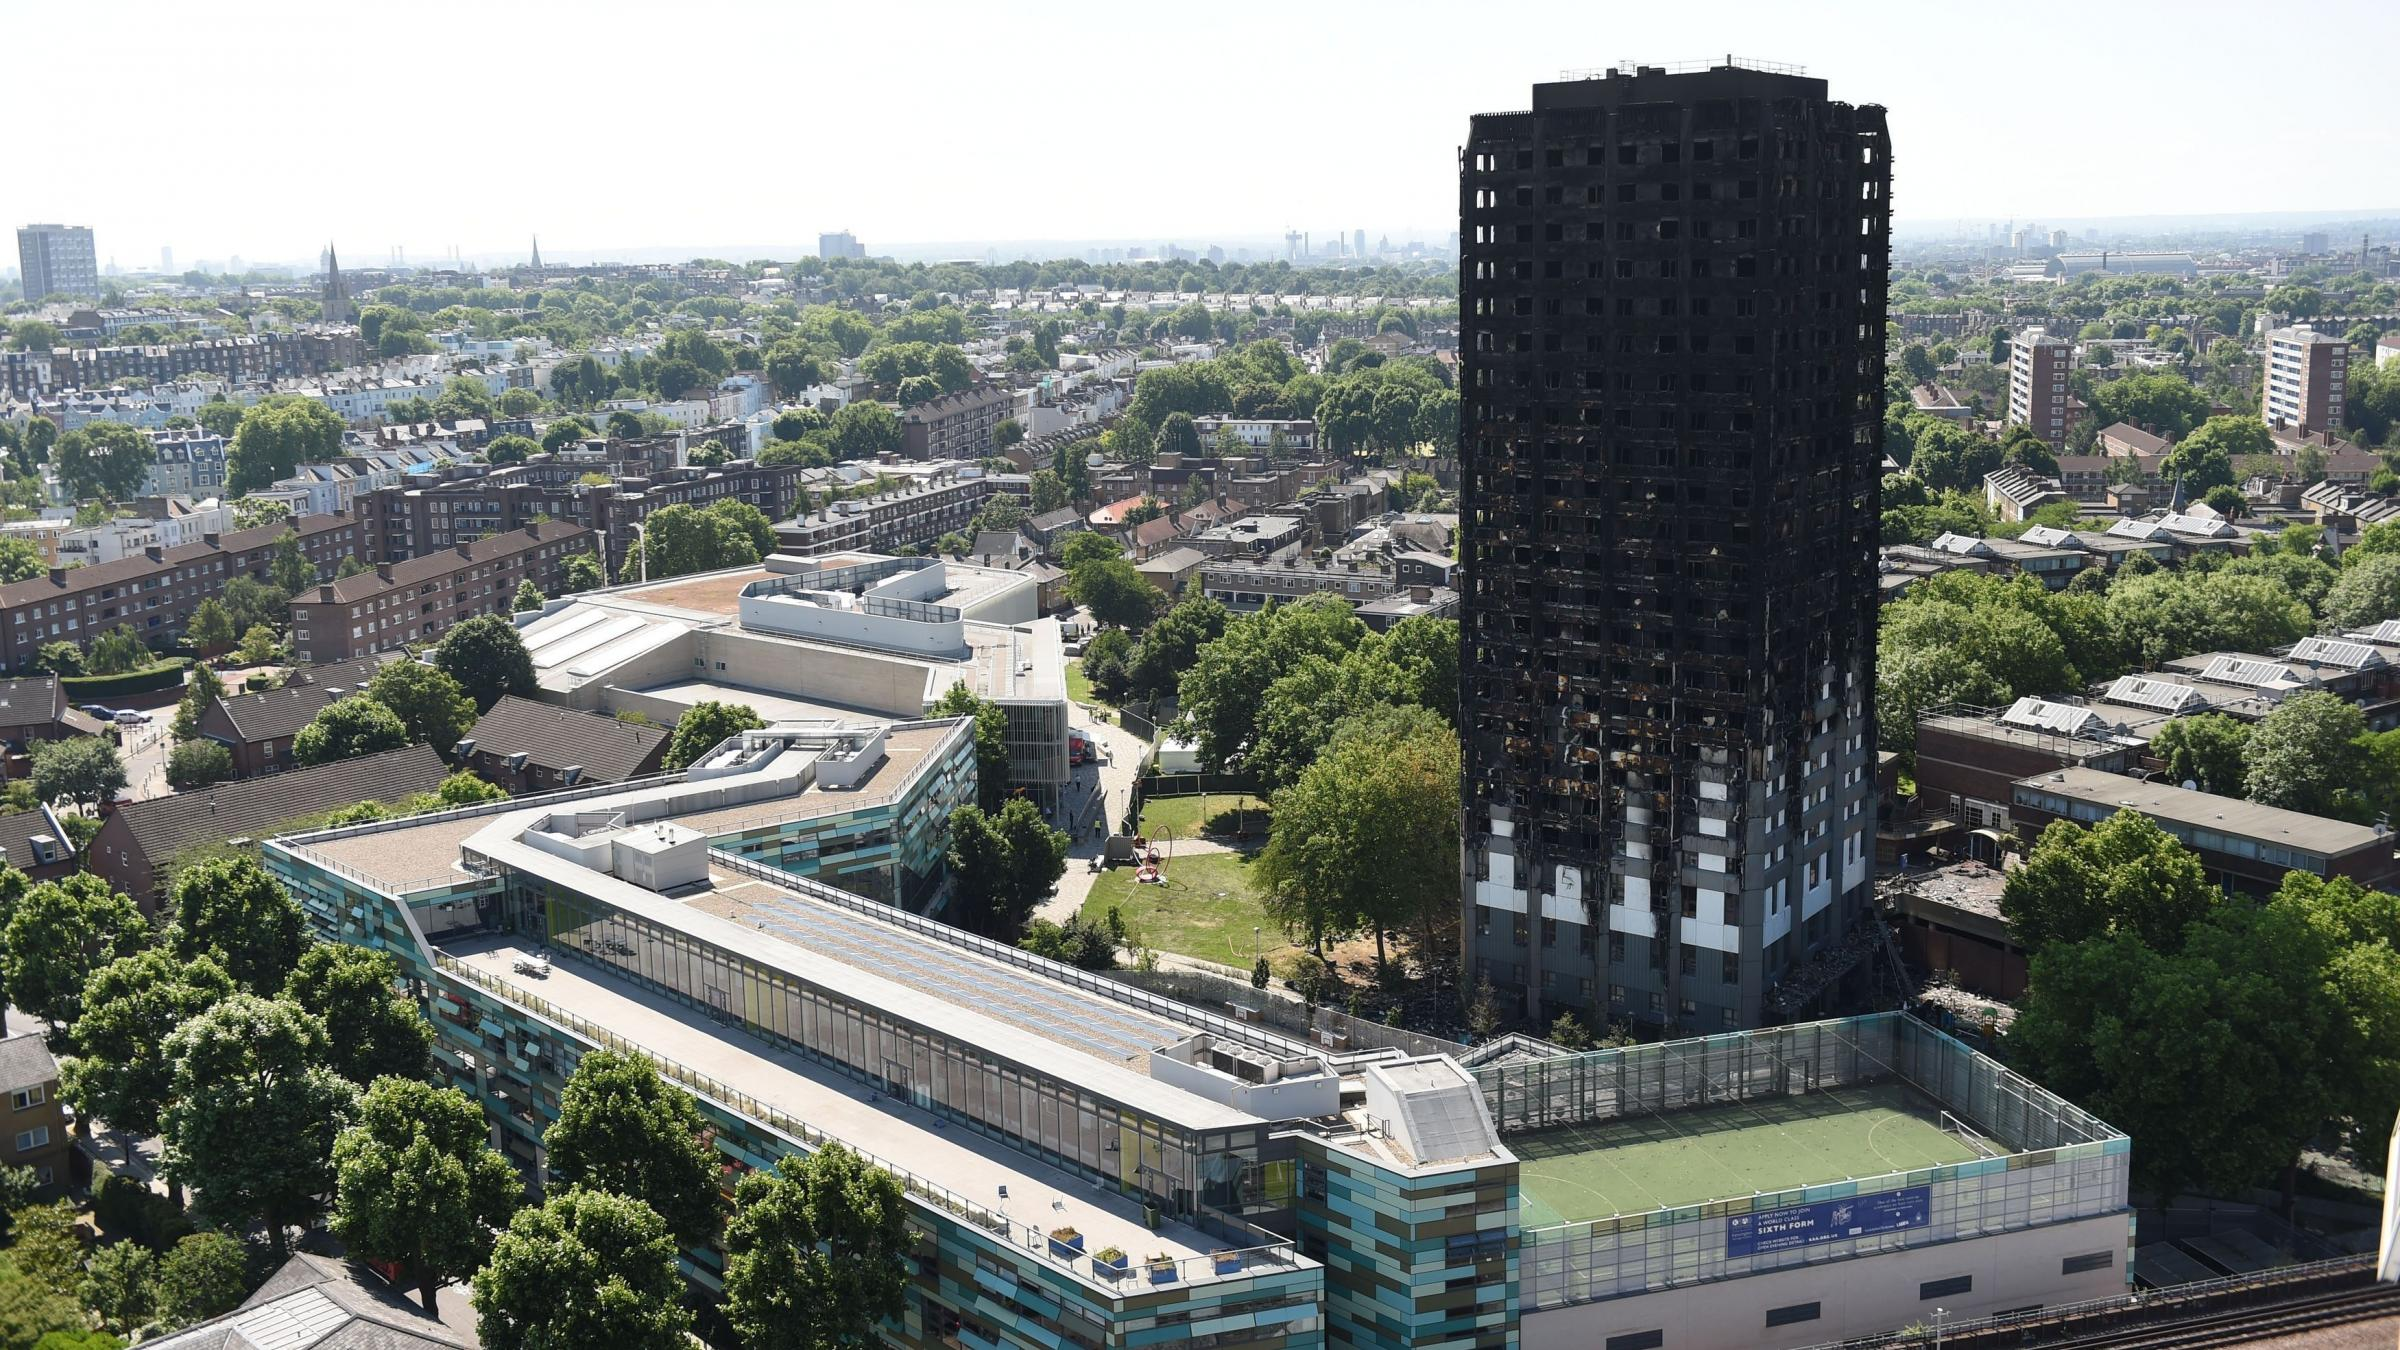 Grenfell Tower victims to get £5,500 from emergency fund Theresa May says